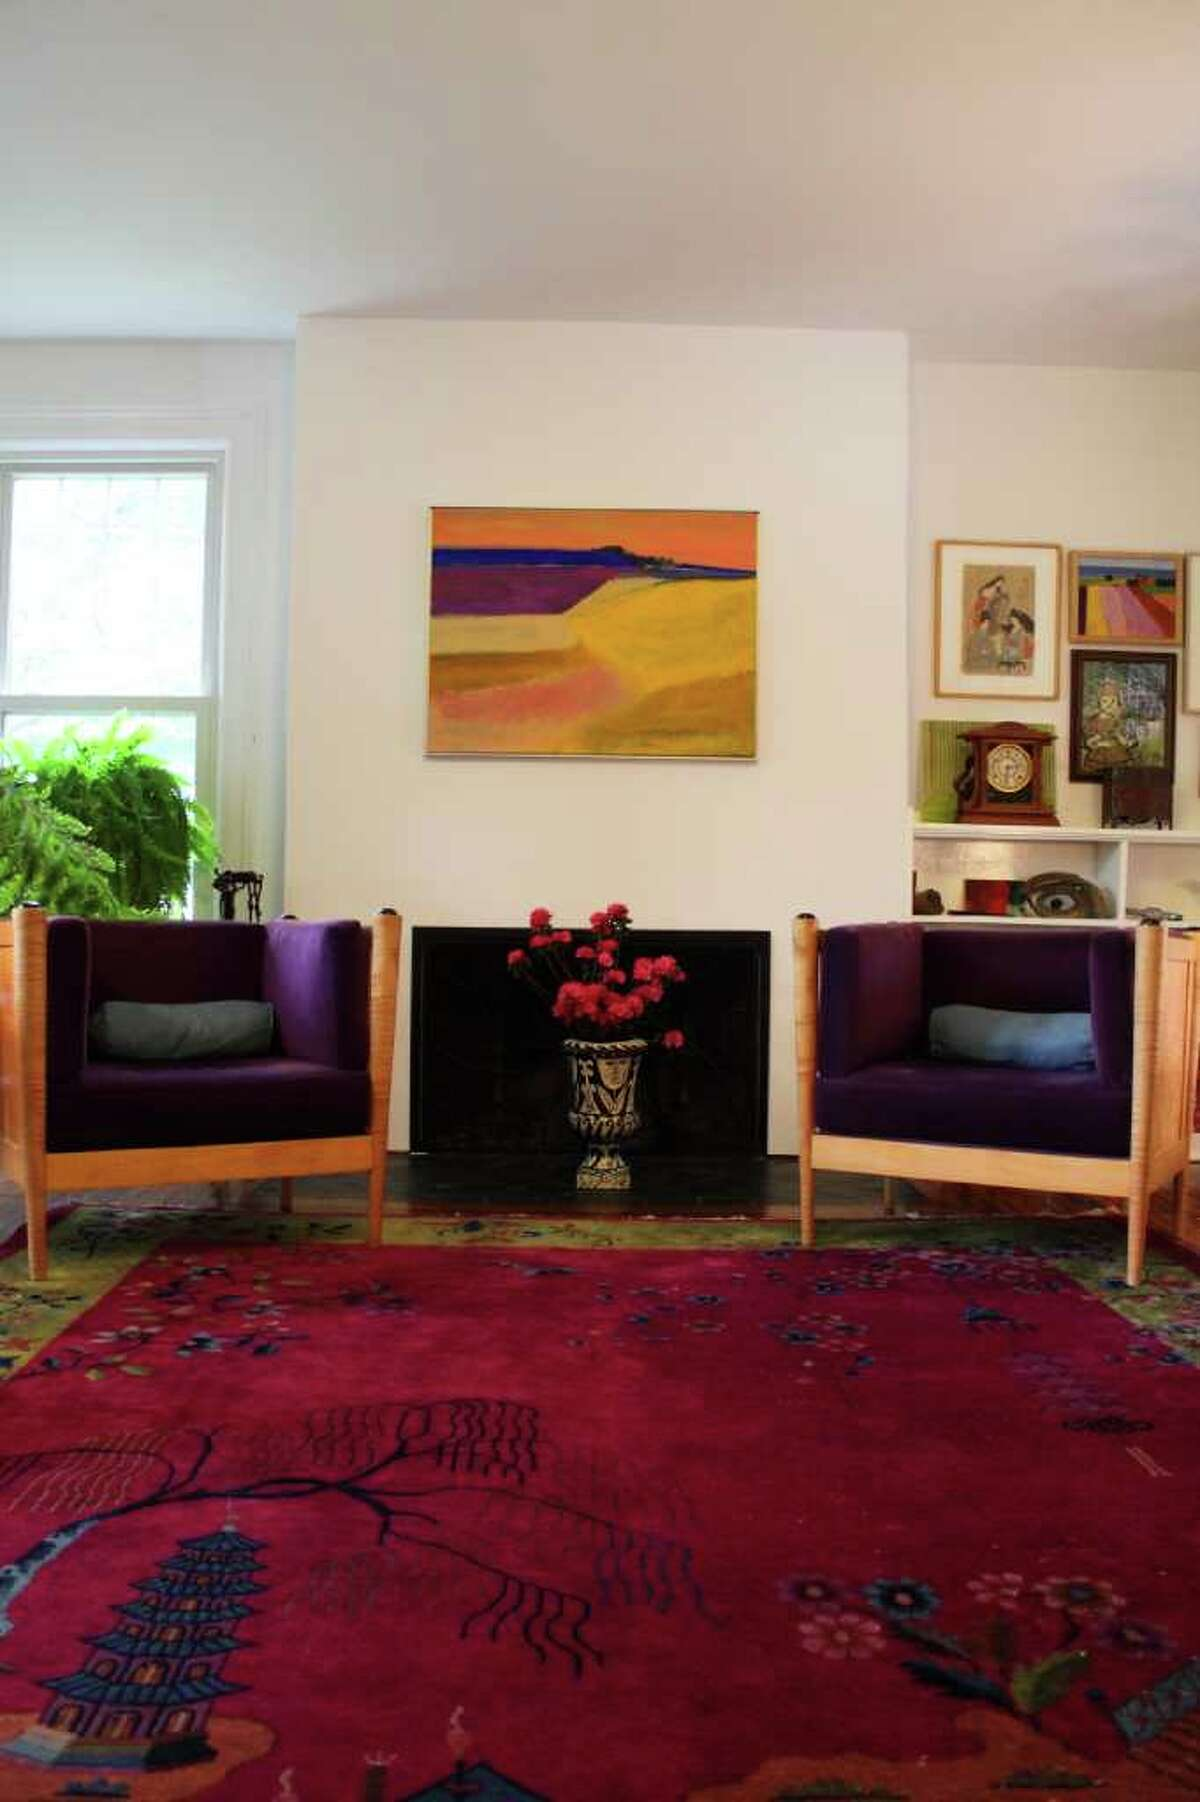 An encounter with a Hudson River School artist's colorful work inspired Kristina Almquist and Greg Pattison's bold decor. (Photos by Nancy Bruno/Life@Home) Click here to read the story.